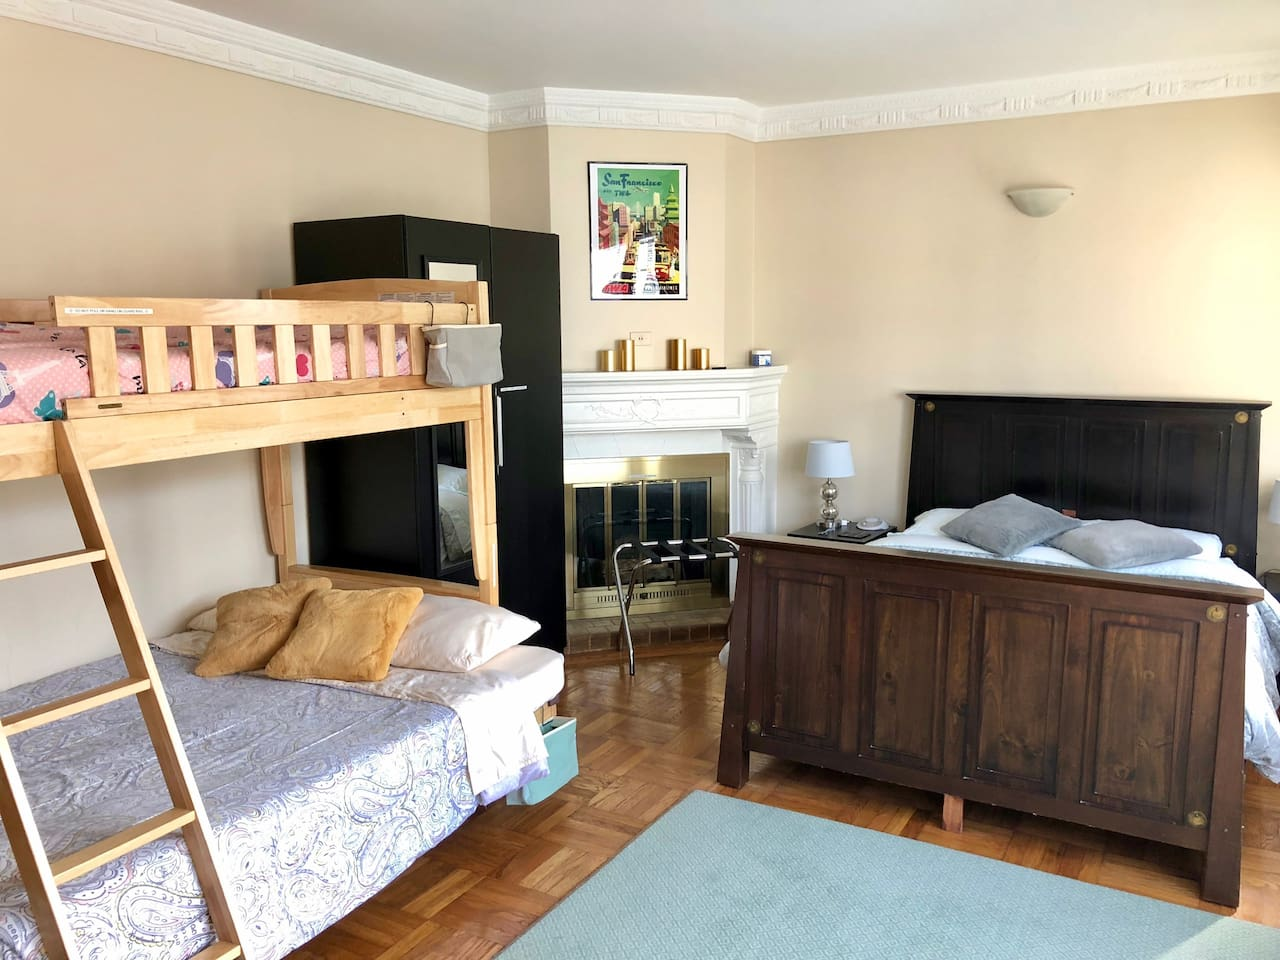 This room features a queen bed, bunk beds (full futon mattress on bottom and twin mattress on top), table and chairs, easy chair, wardrobe, TV with complimentary Netflix, mini fridge, luggage stands, white noise machine, and phone charging cables.